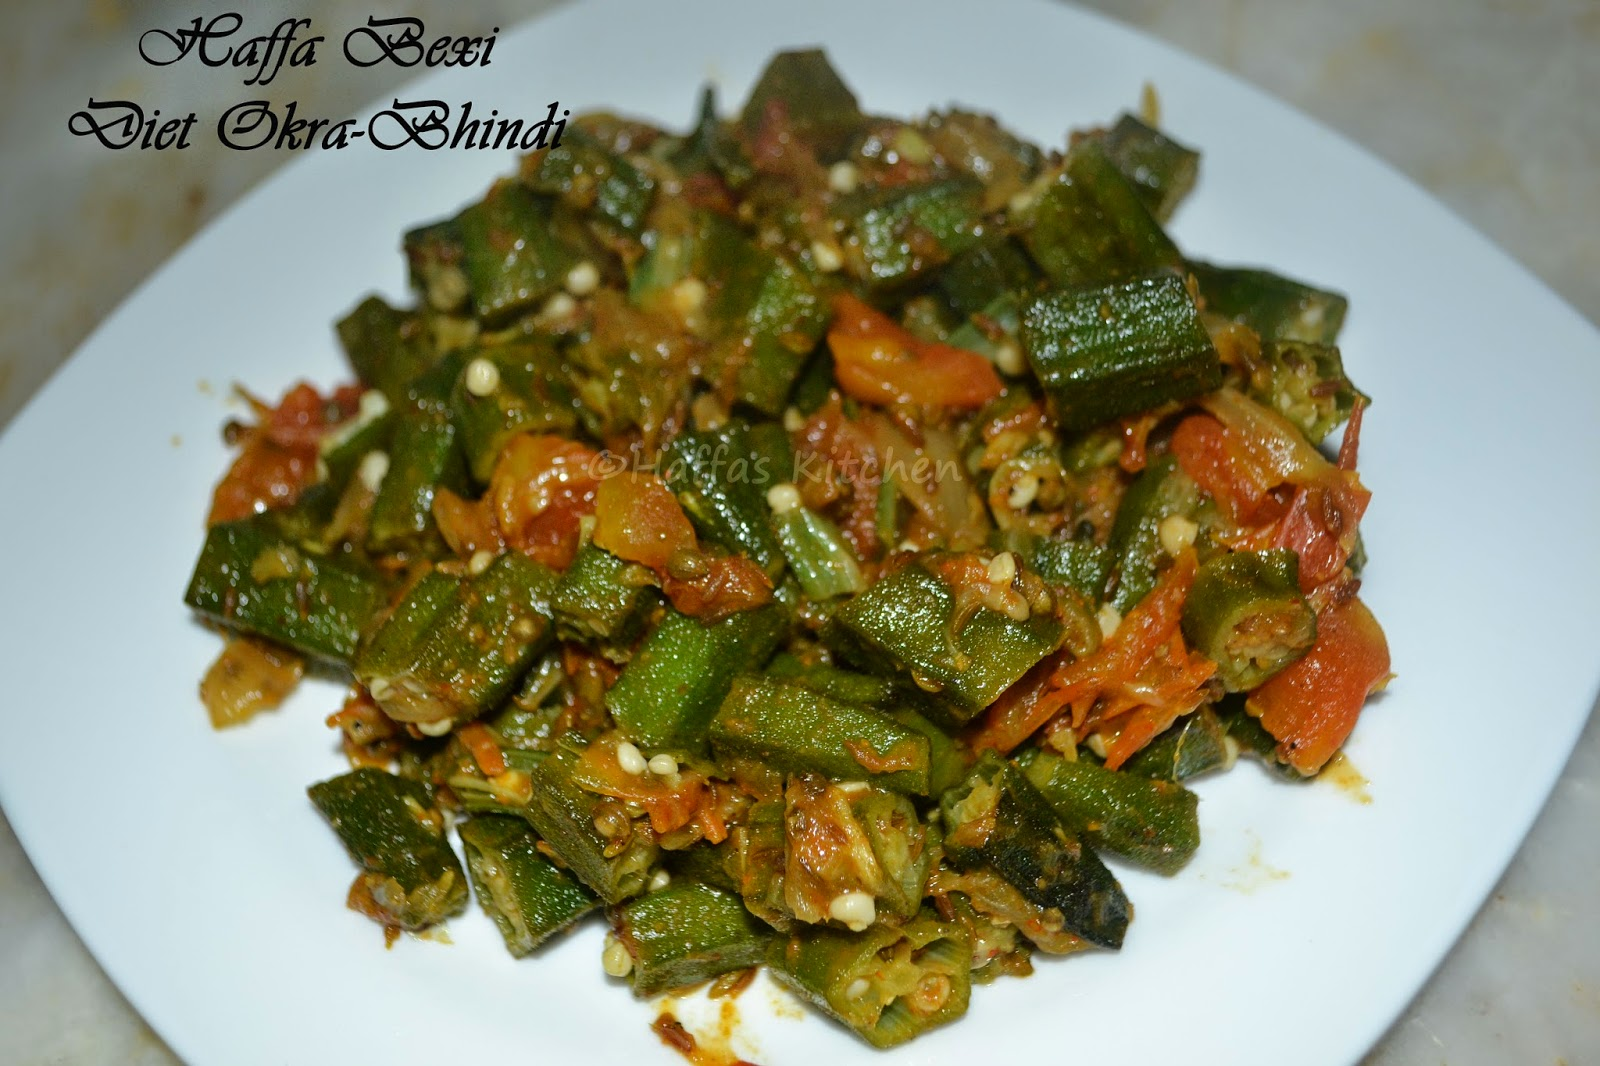 Diet okra bhindi haffas kitchen adventures diet okra diet recipes recipes without oil healthy okra recipes low carb forumfinder Image collections